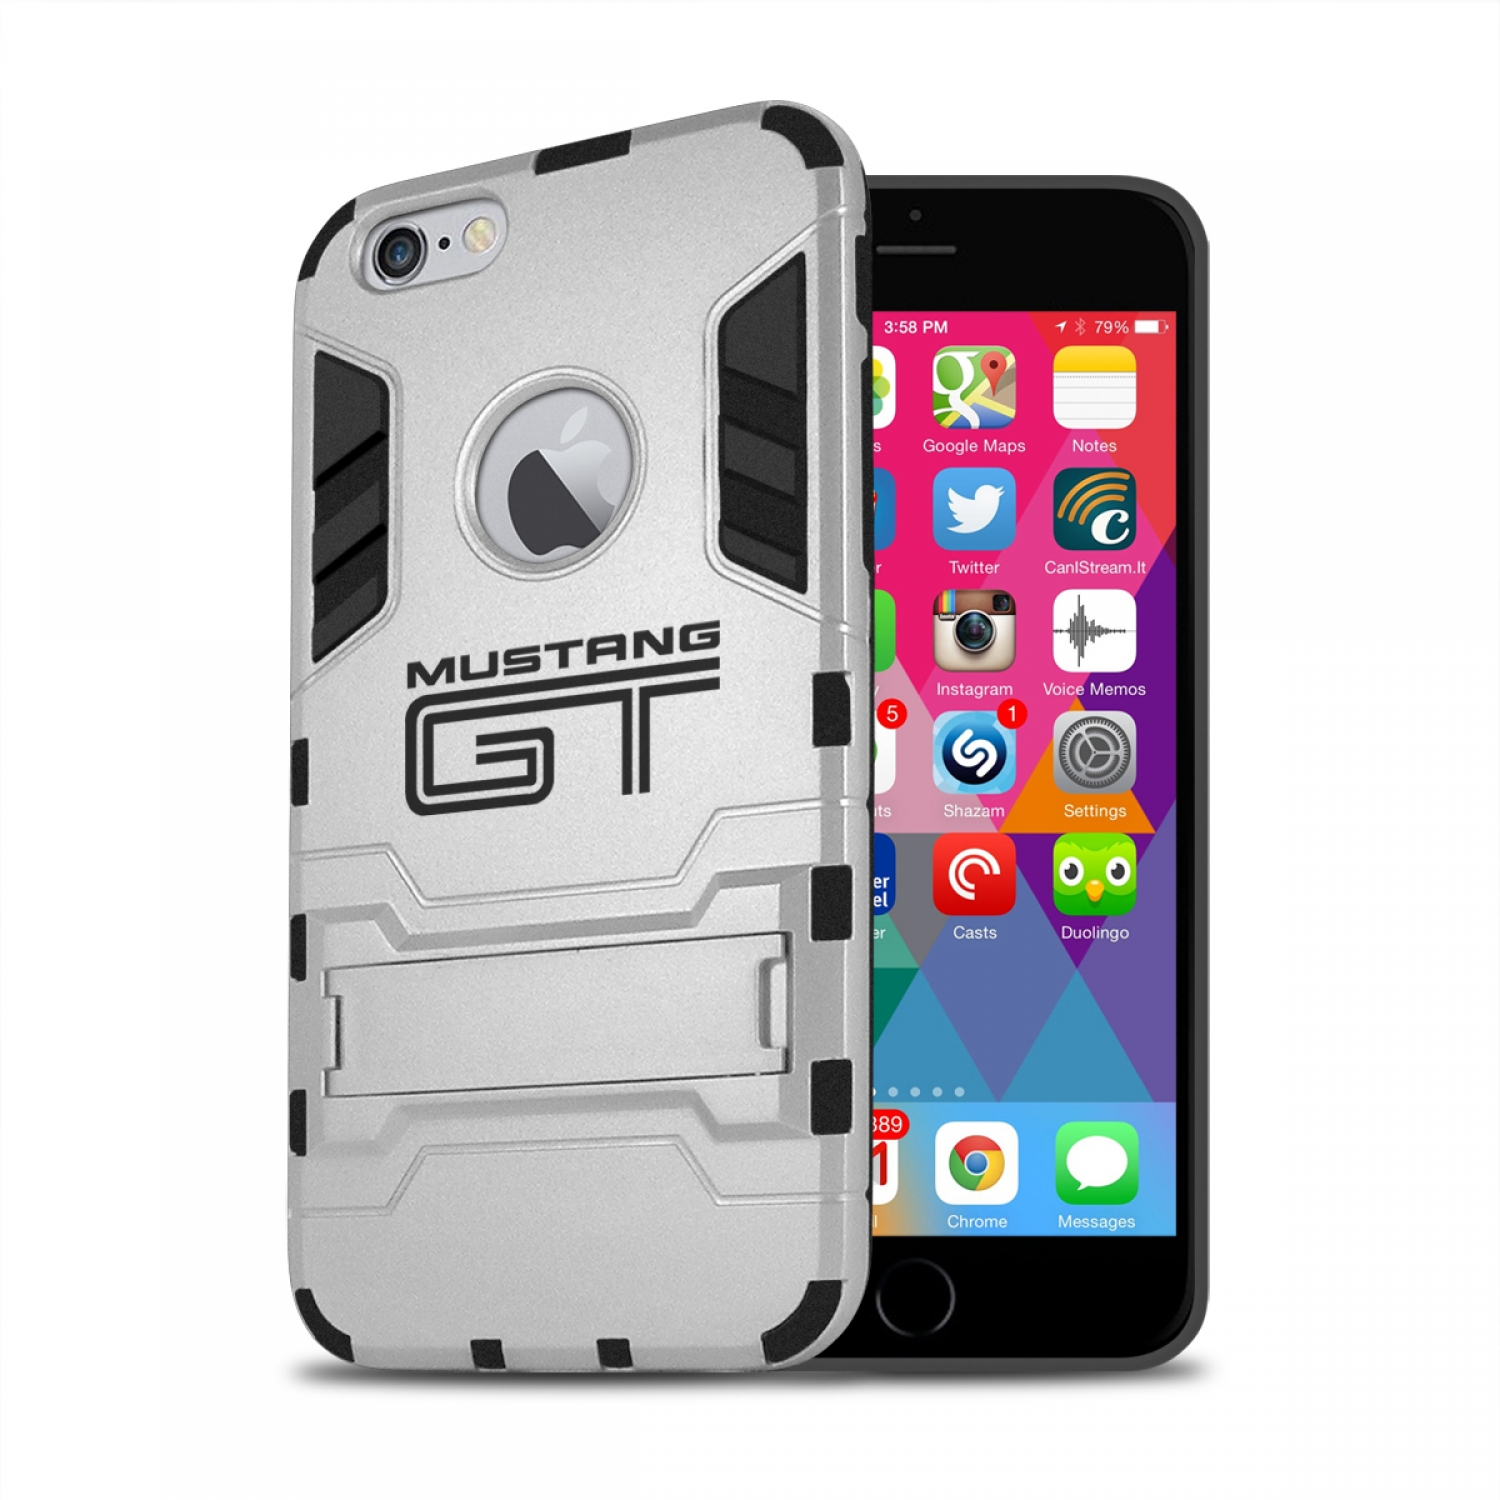 Ford Mustang GT iPhone 6 6s Shockproof TPU ABS Hybrid Silver Phone Case